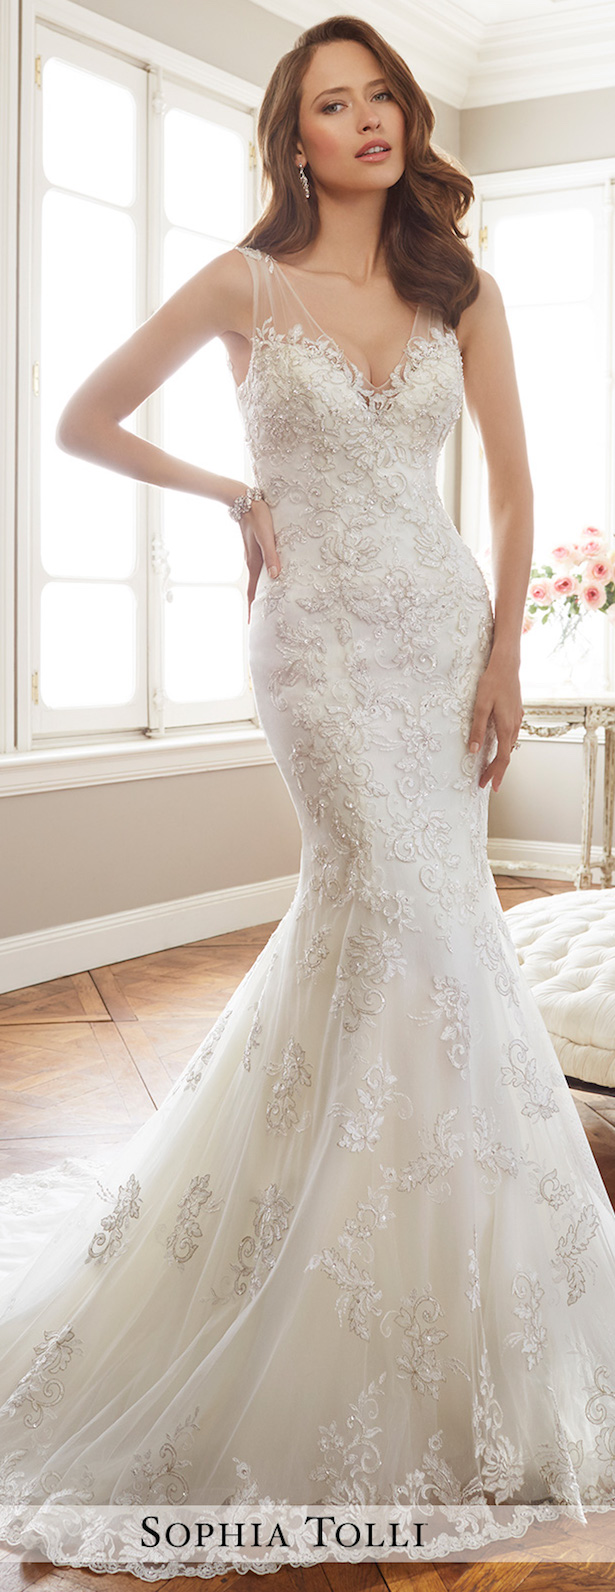 02 mermaid silhouette, illusion straps and a deep V neckline, lace and beading make this dress stunning